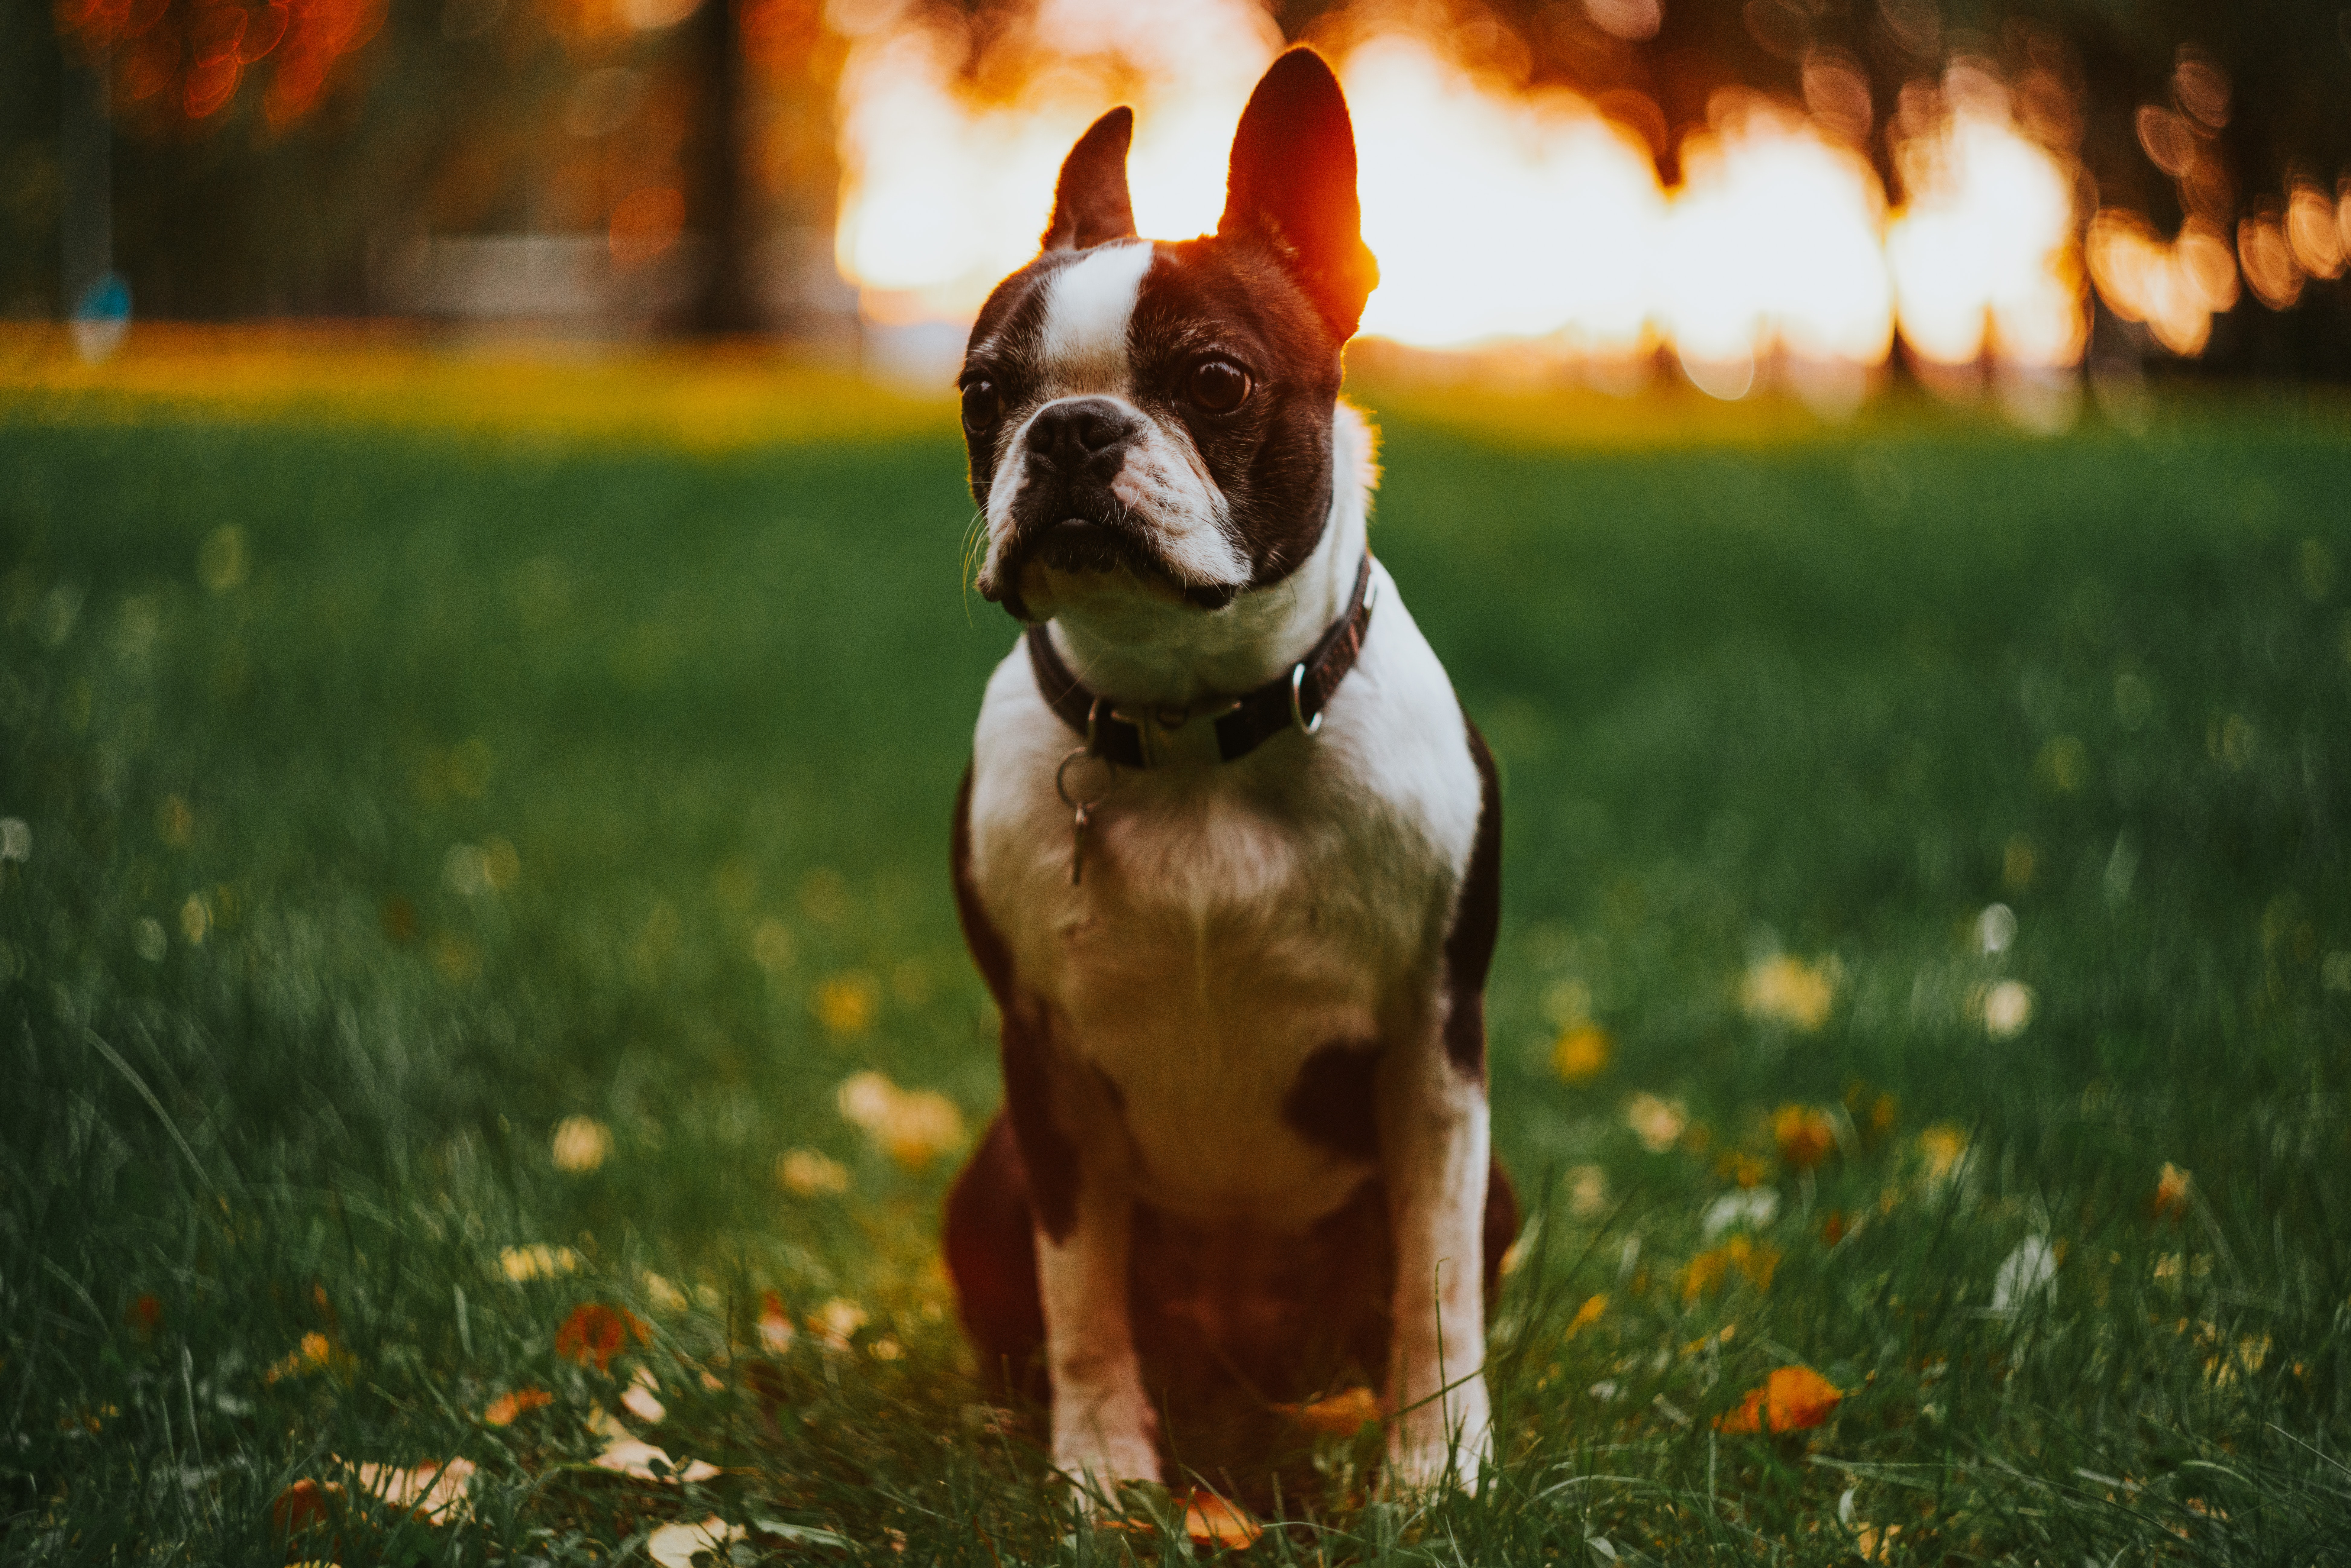 A Boston Terrier sitting outdoors with a bright background